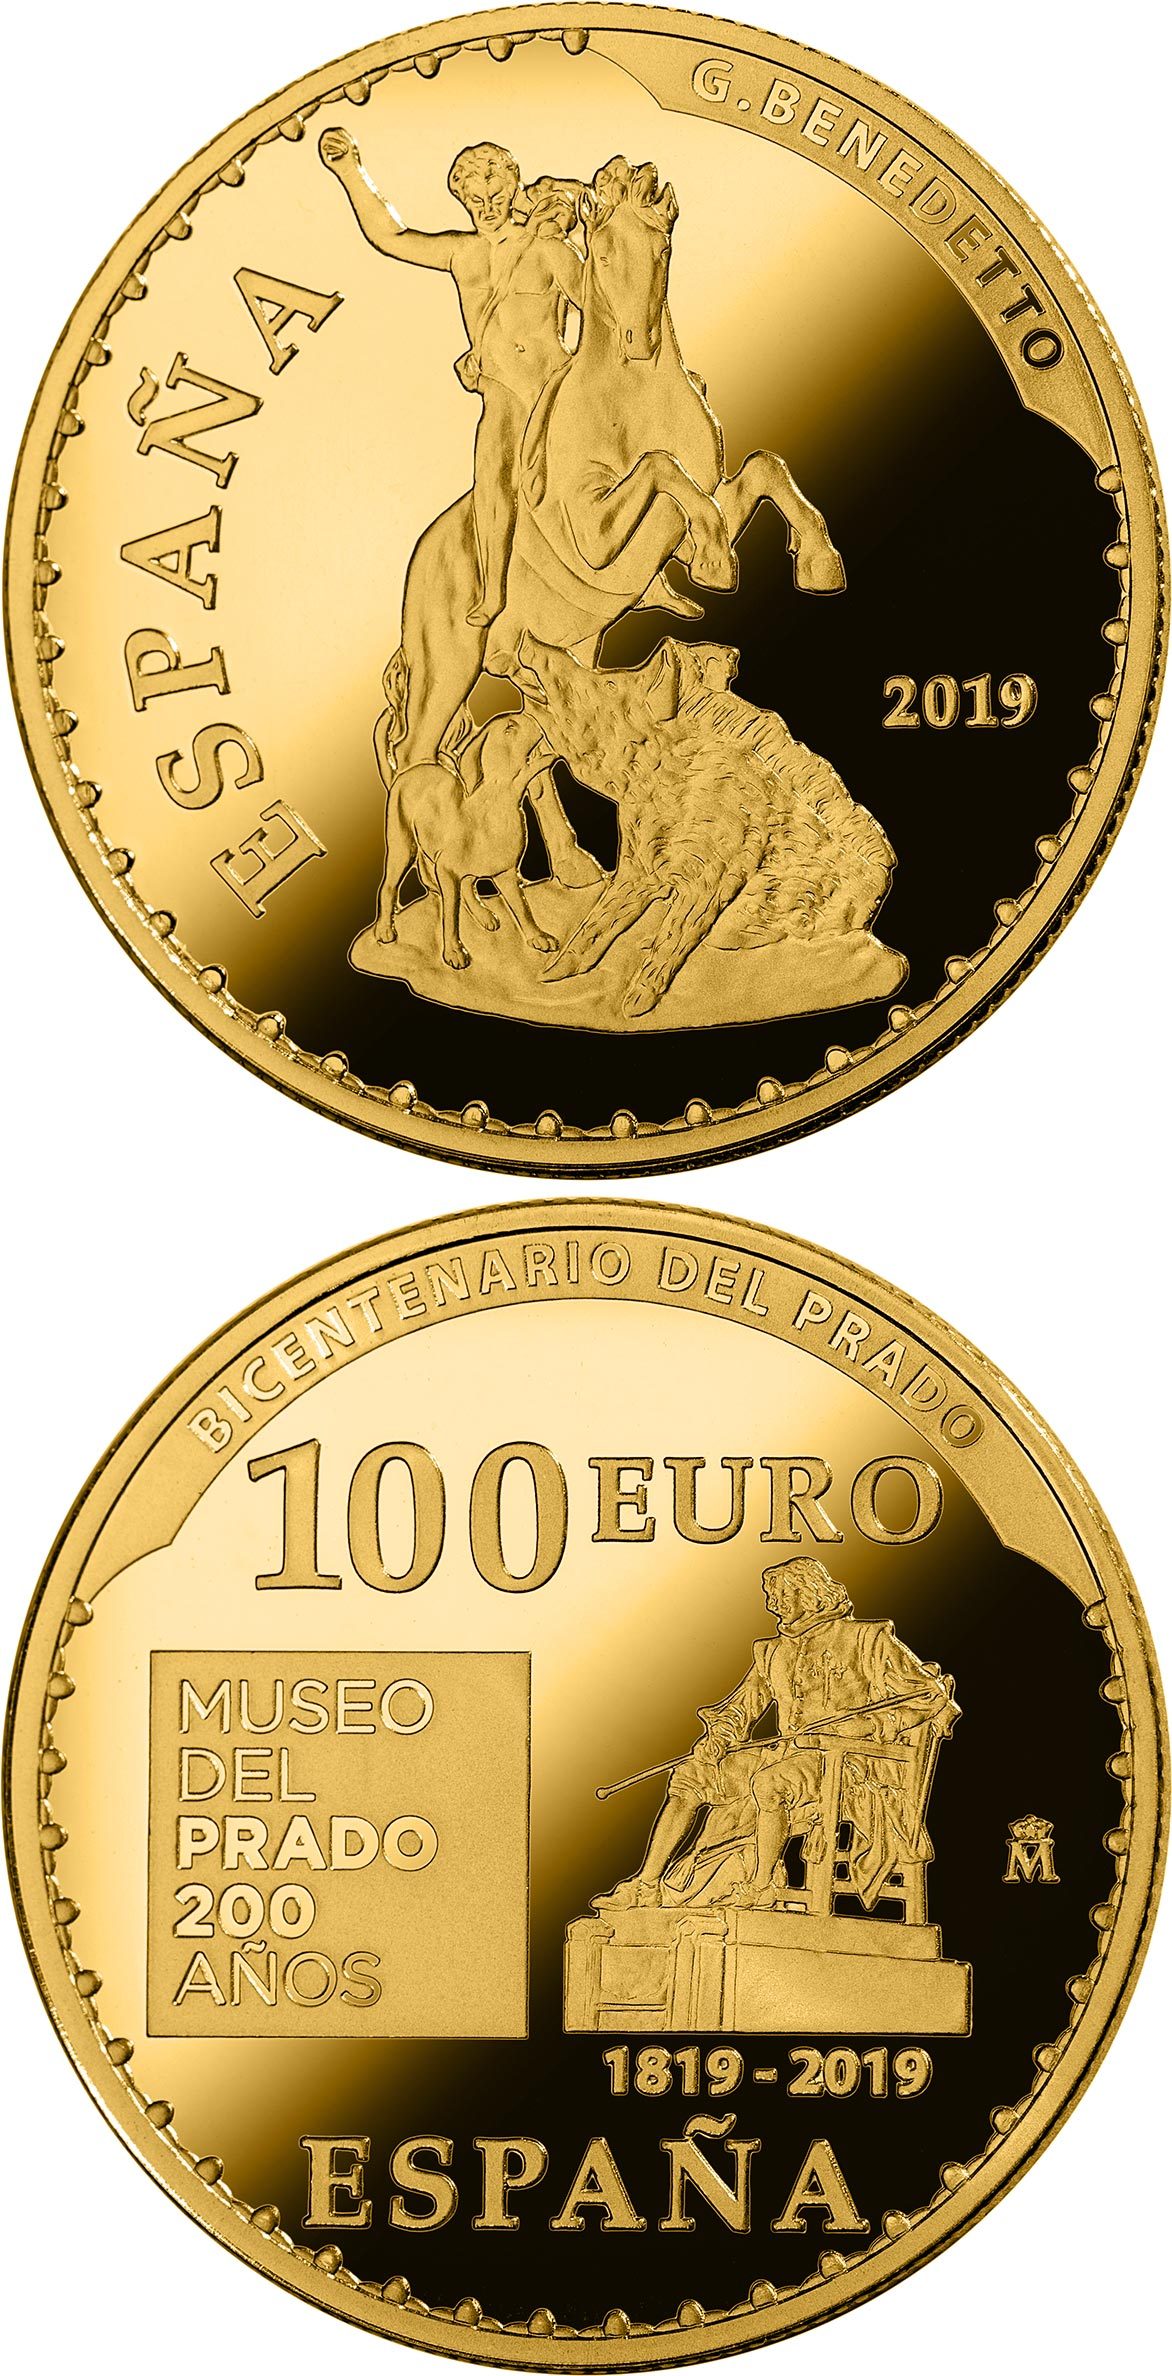 Image of 100 euro coin - Bicentenary of the Museum del Prado - The hunting of Meleagro | Spain 2019.  The Gold coin is of Proof quality.